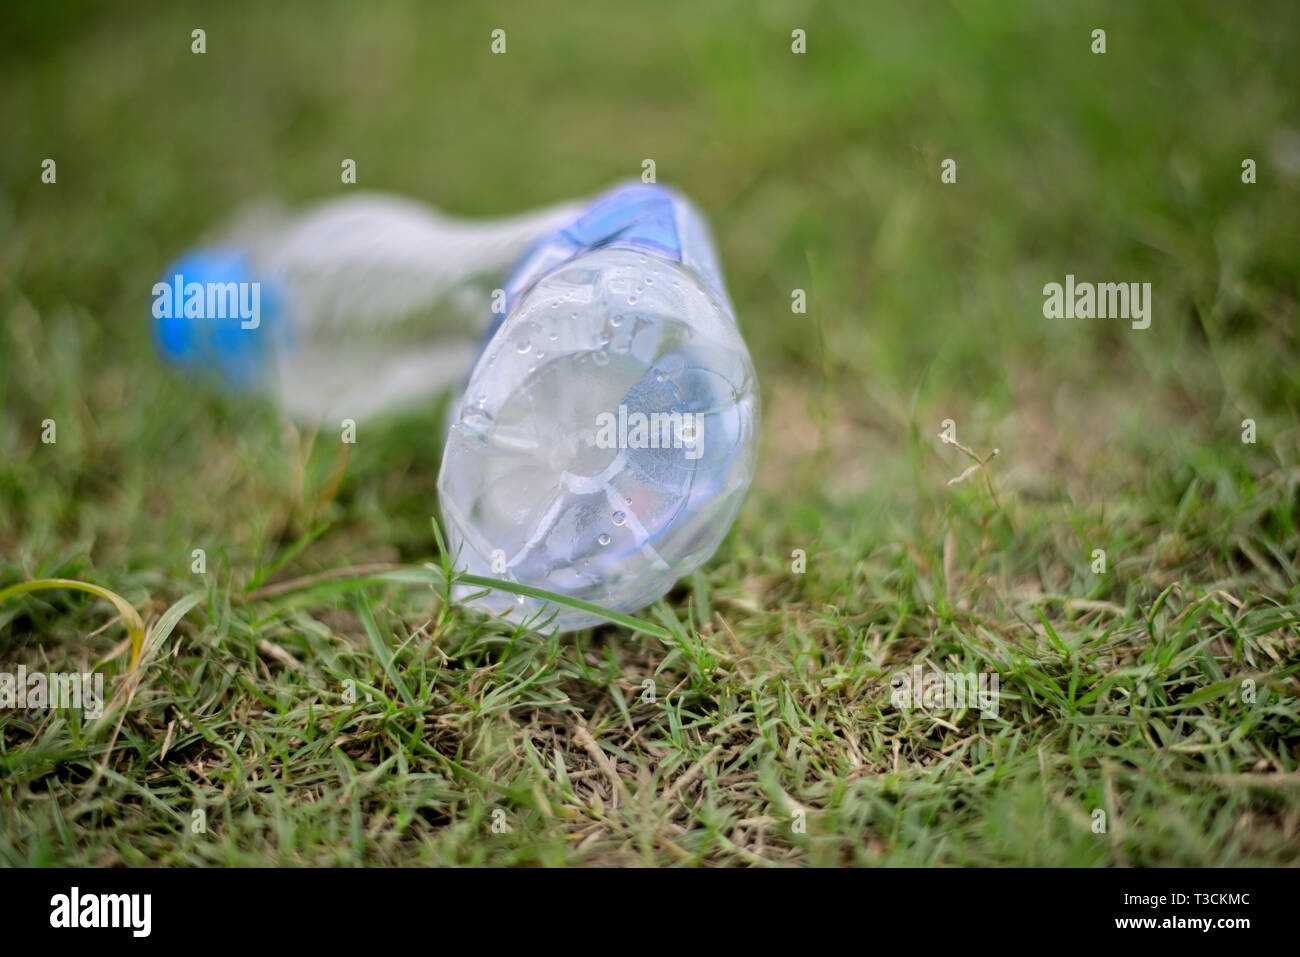 Discarded plastic water bottle on green grass field. - Stock Image